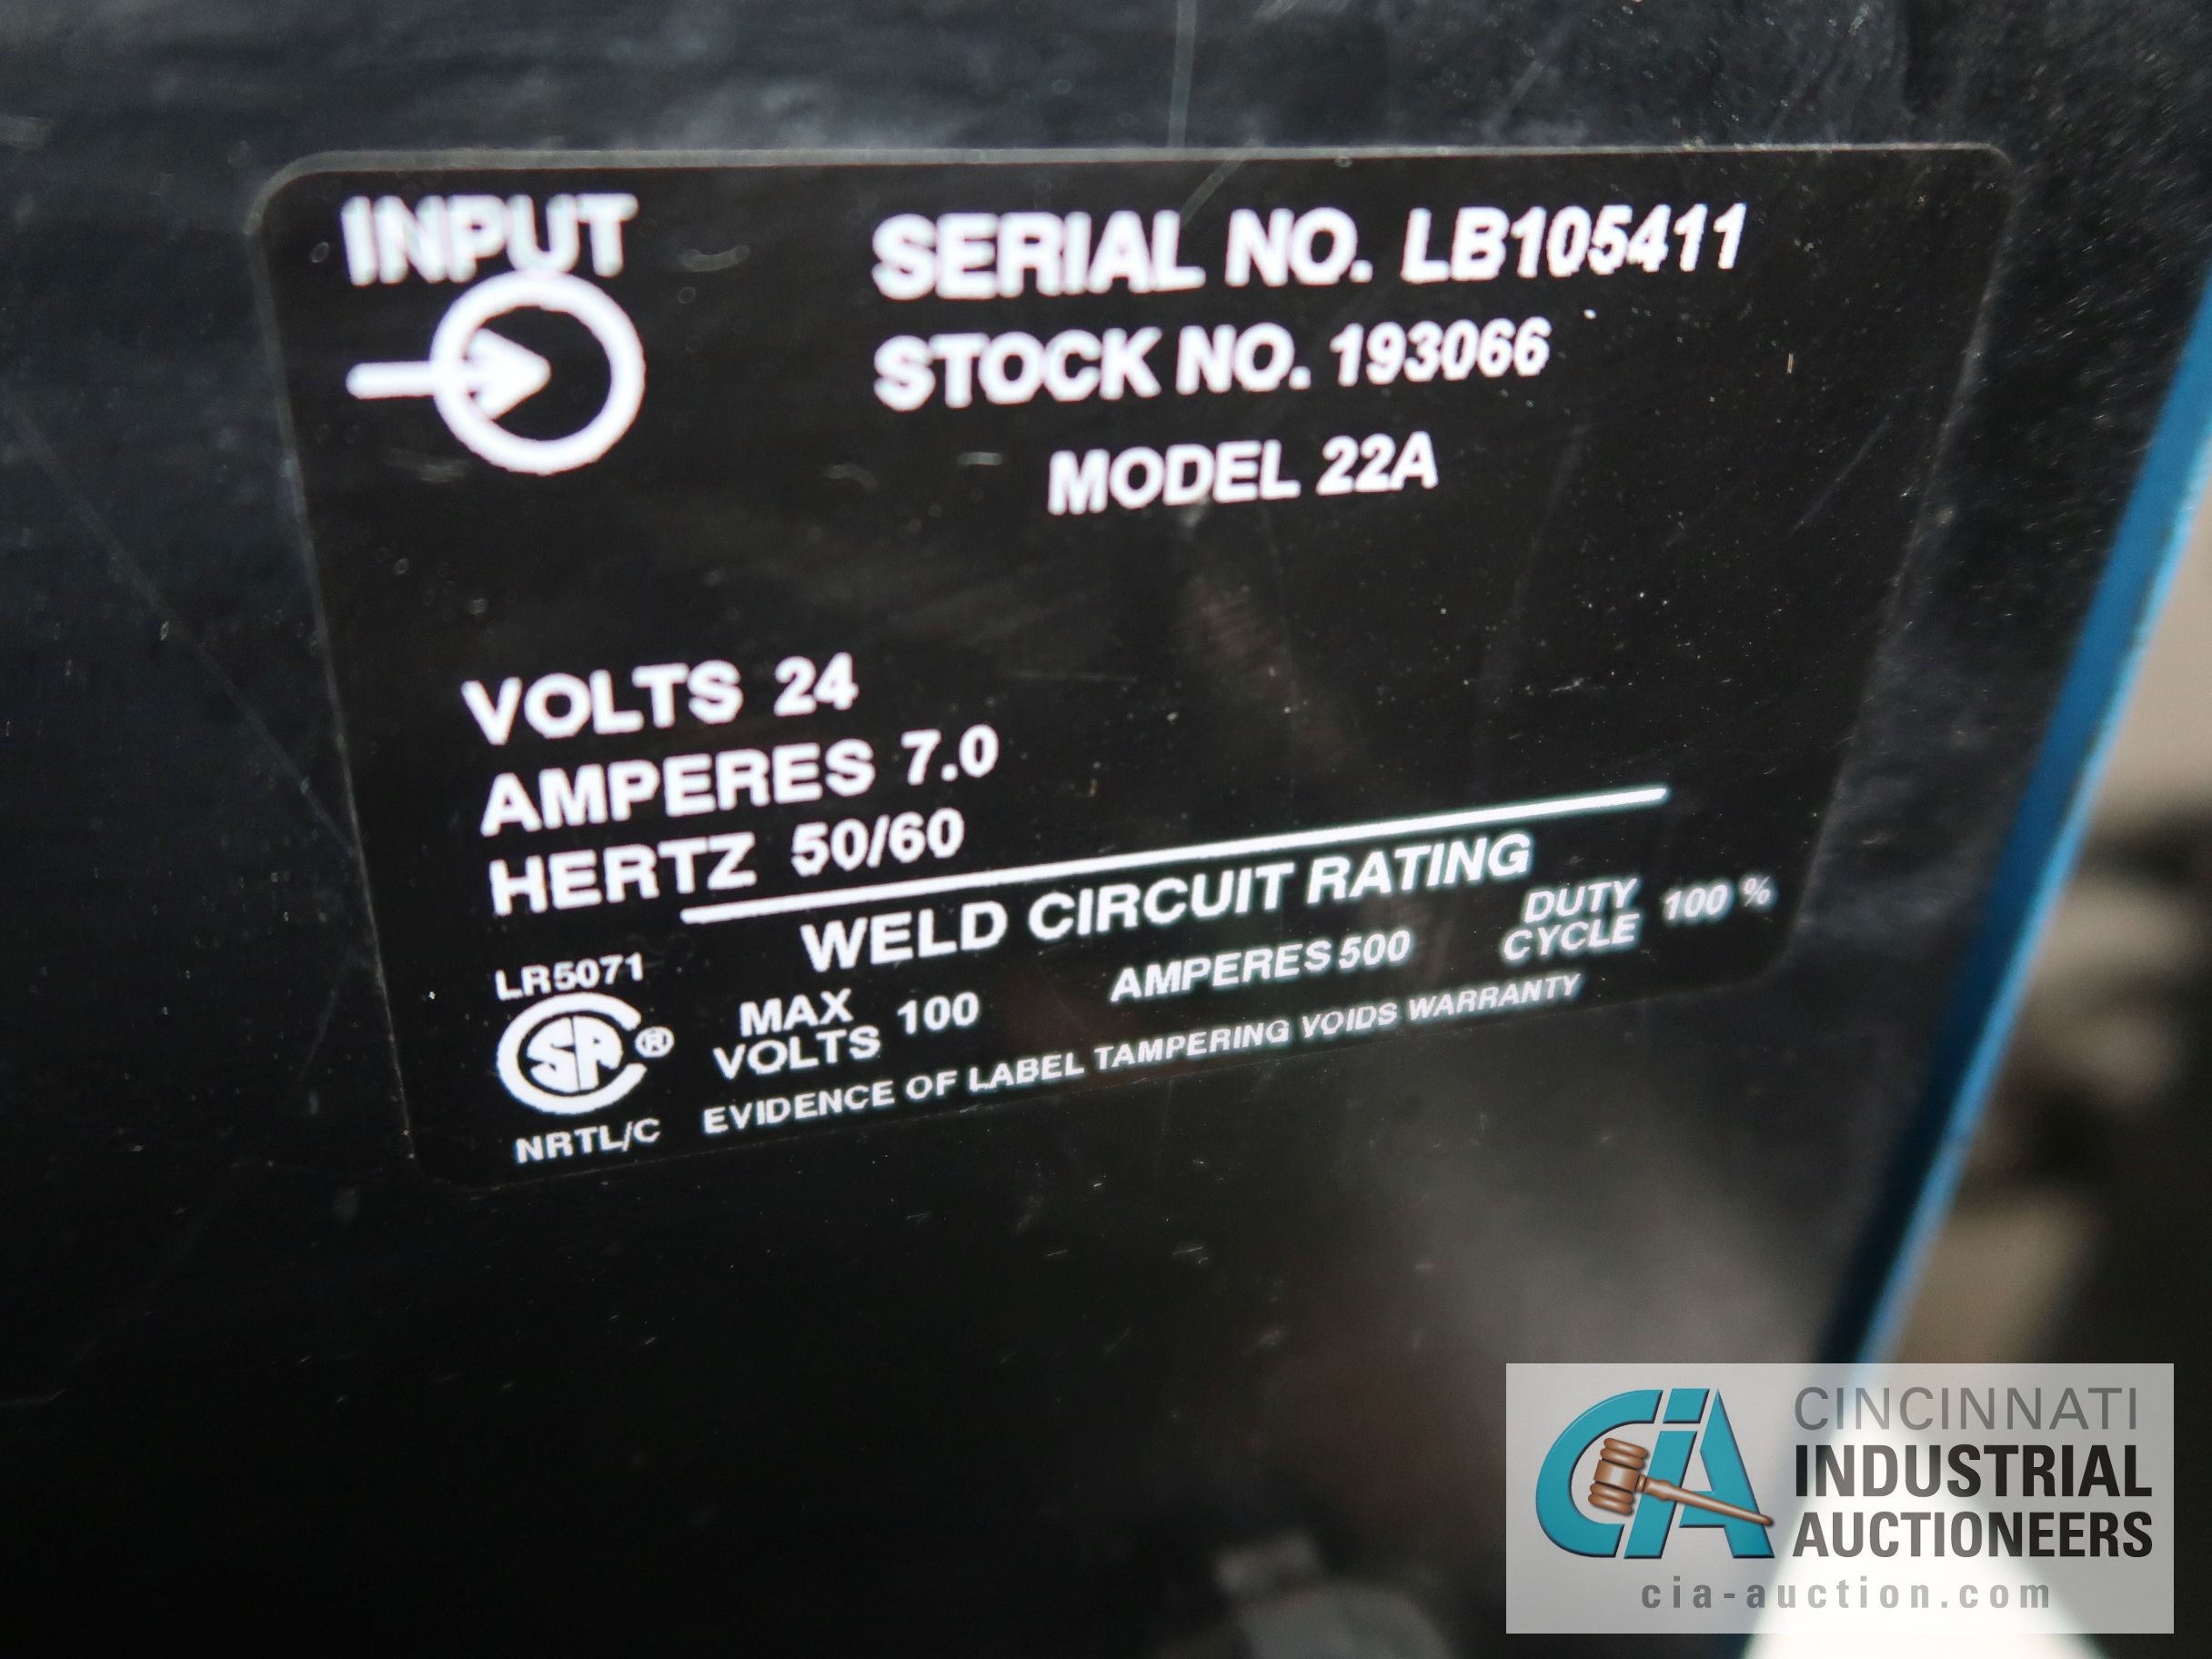 450 AMP MILLER DELTAWELD 452 MIG WELDER WITH MILLER 22A WIRE FEED; S/N LB106141 - Image 4 of 4